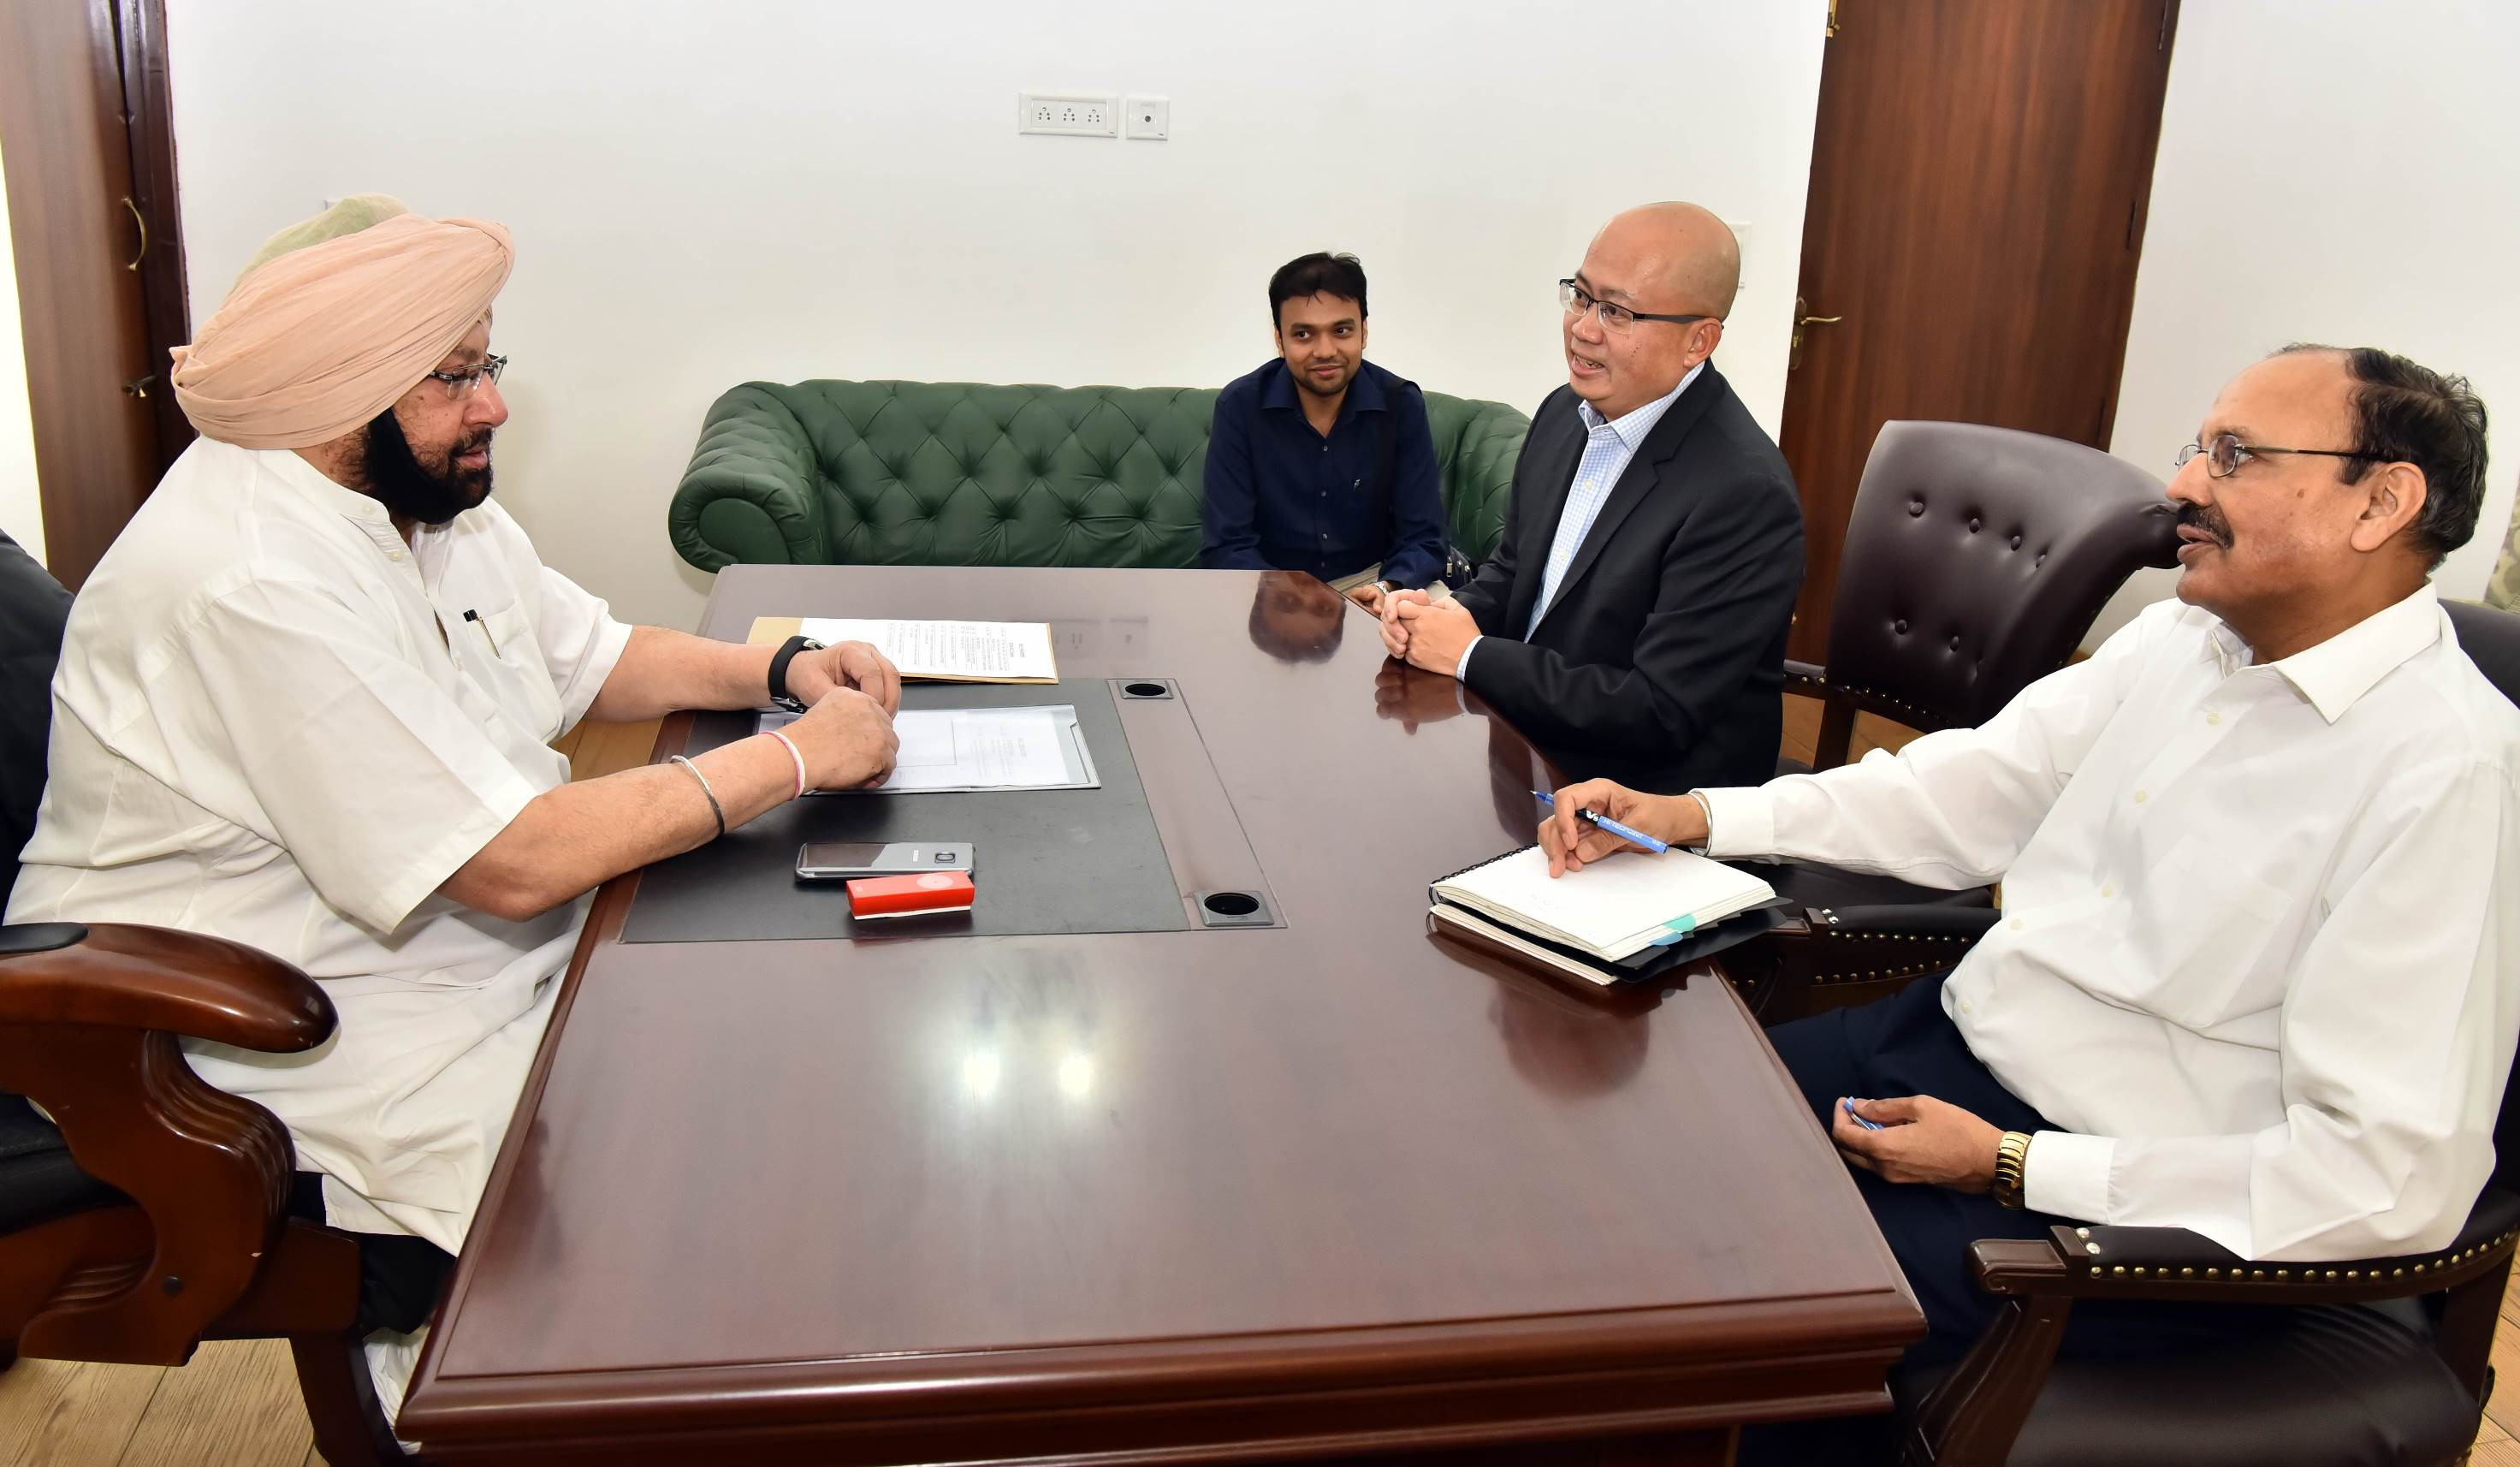 Punjab Chief Minister Captain Amarinder Singh at his residence with Vistara CEO Phee Teik Yeoh (centre) and his Advisor Gurjot Singh Malhi (right).